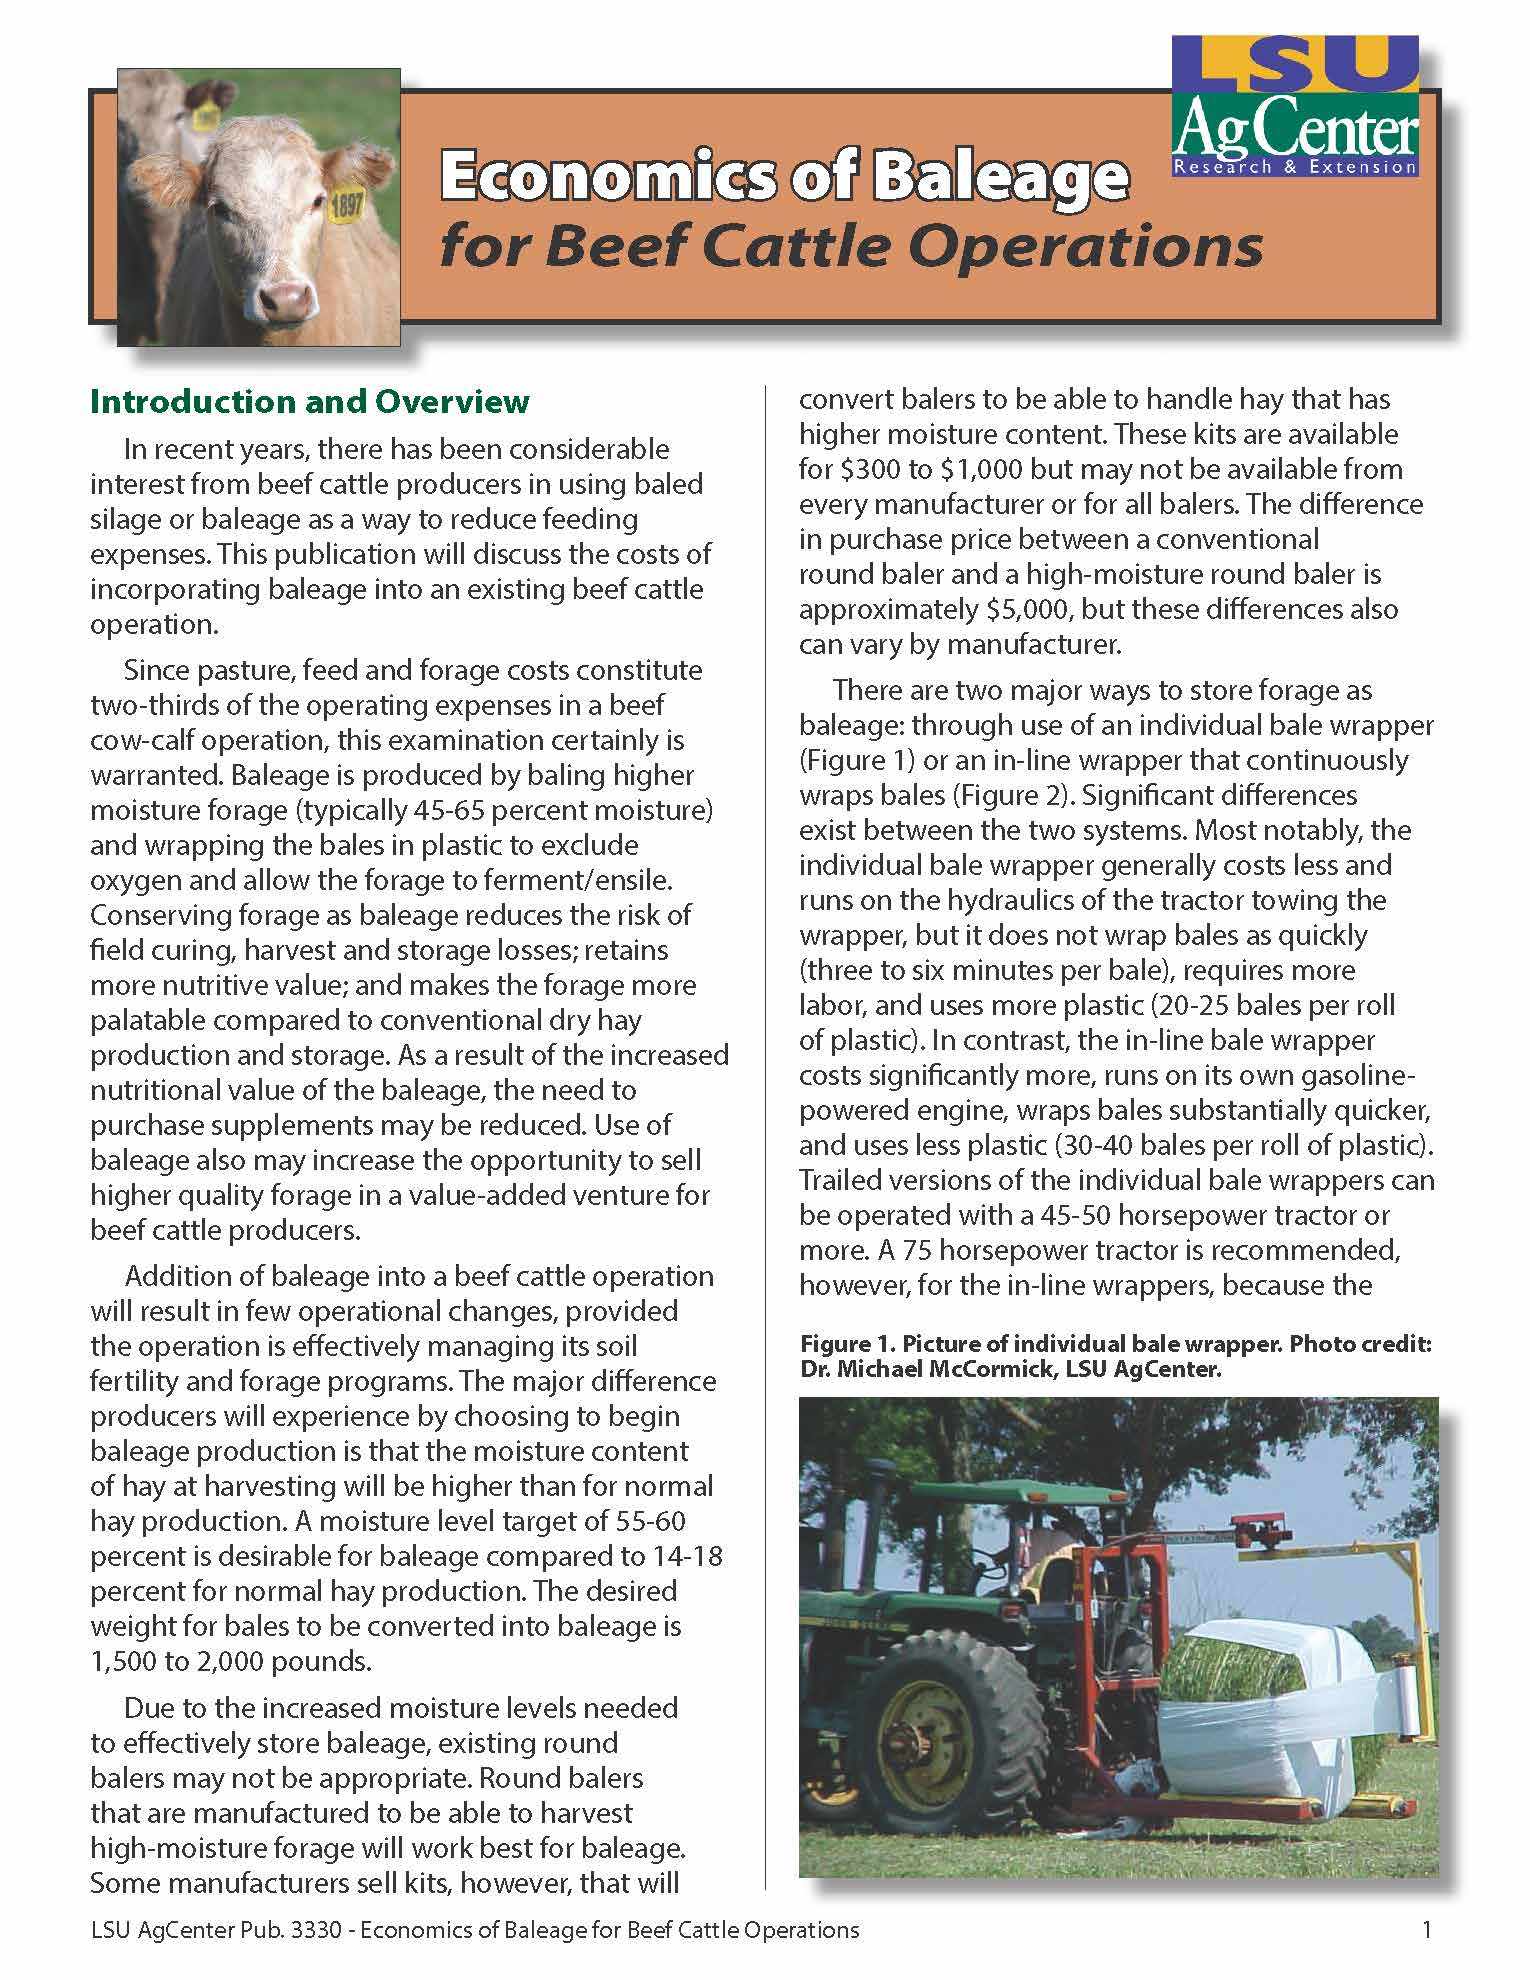 Economics of Baleage for Beef Cattle Operations